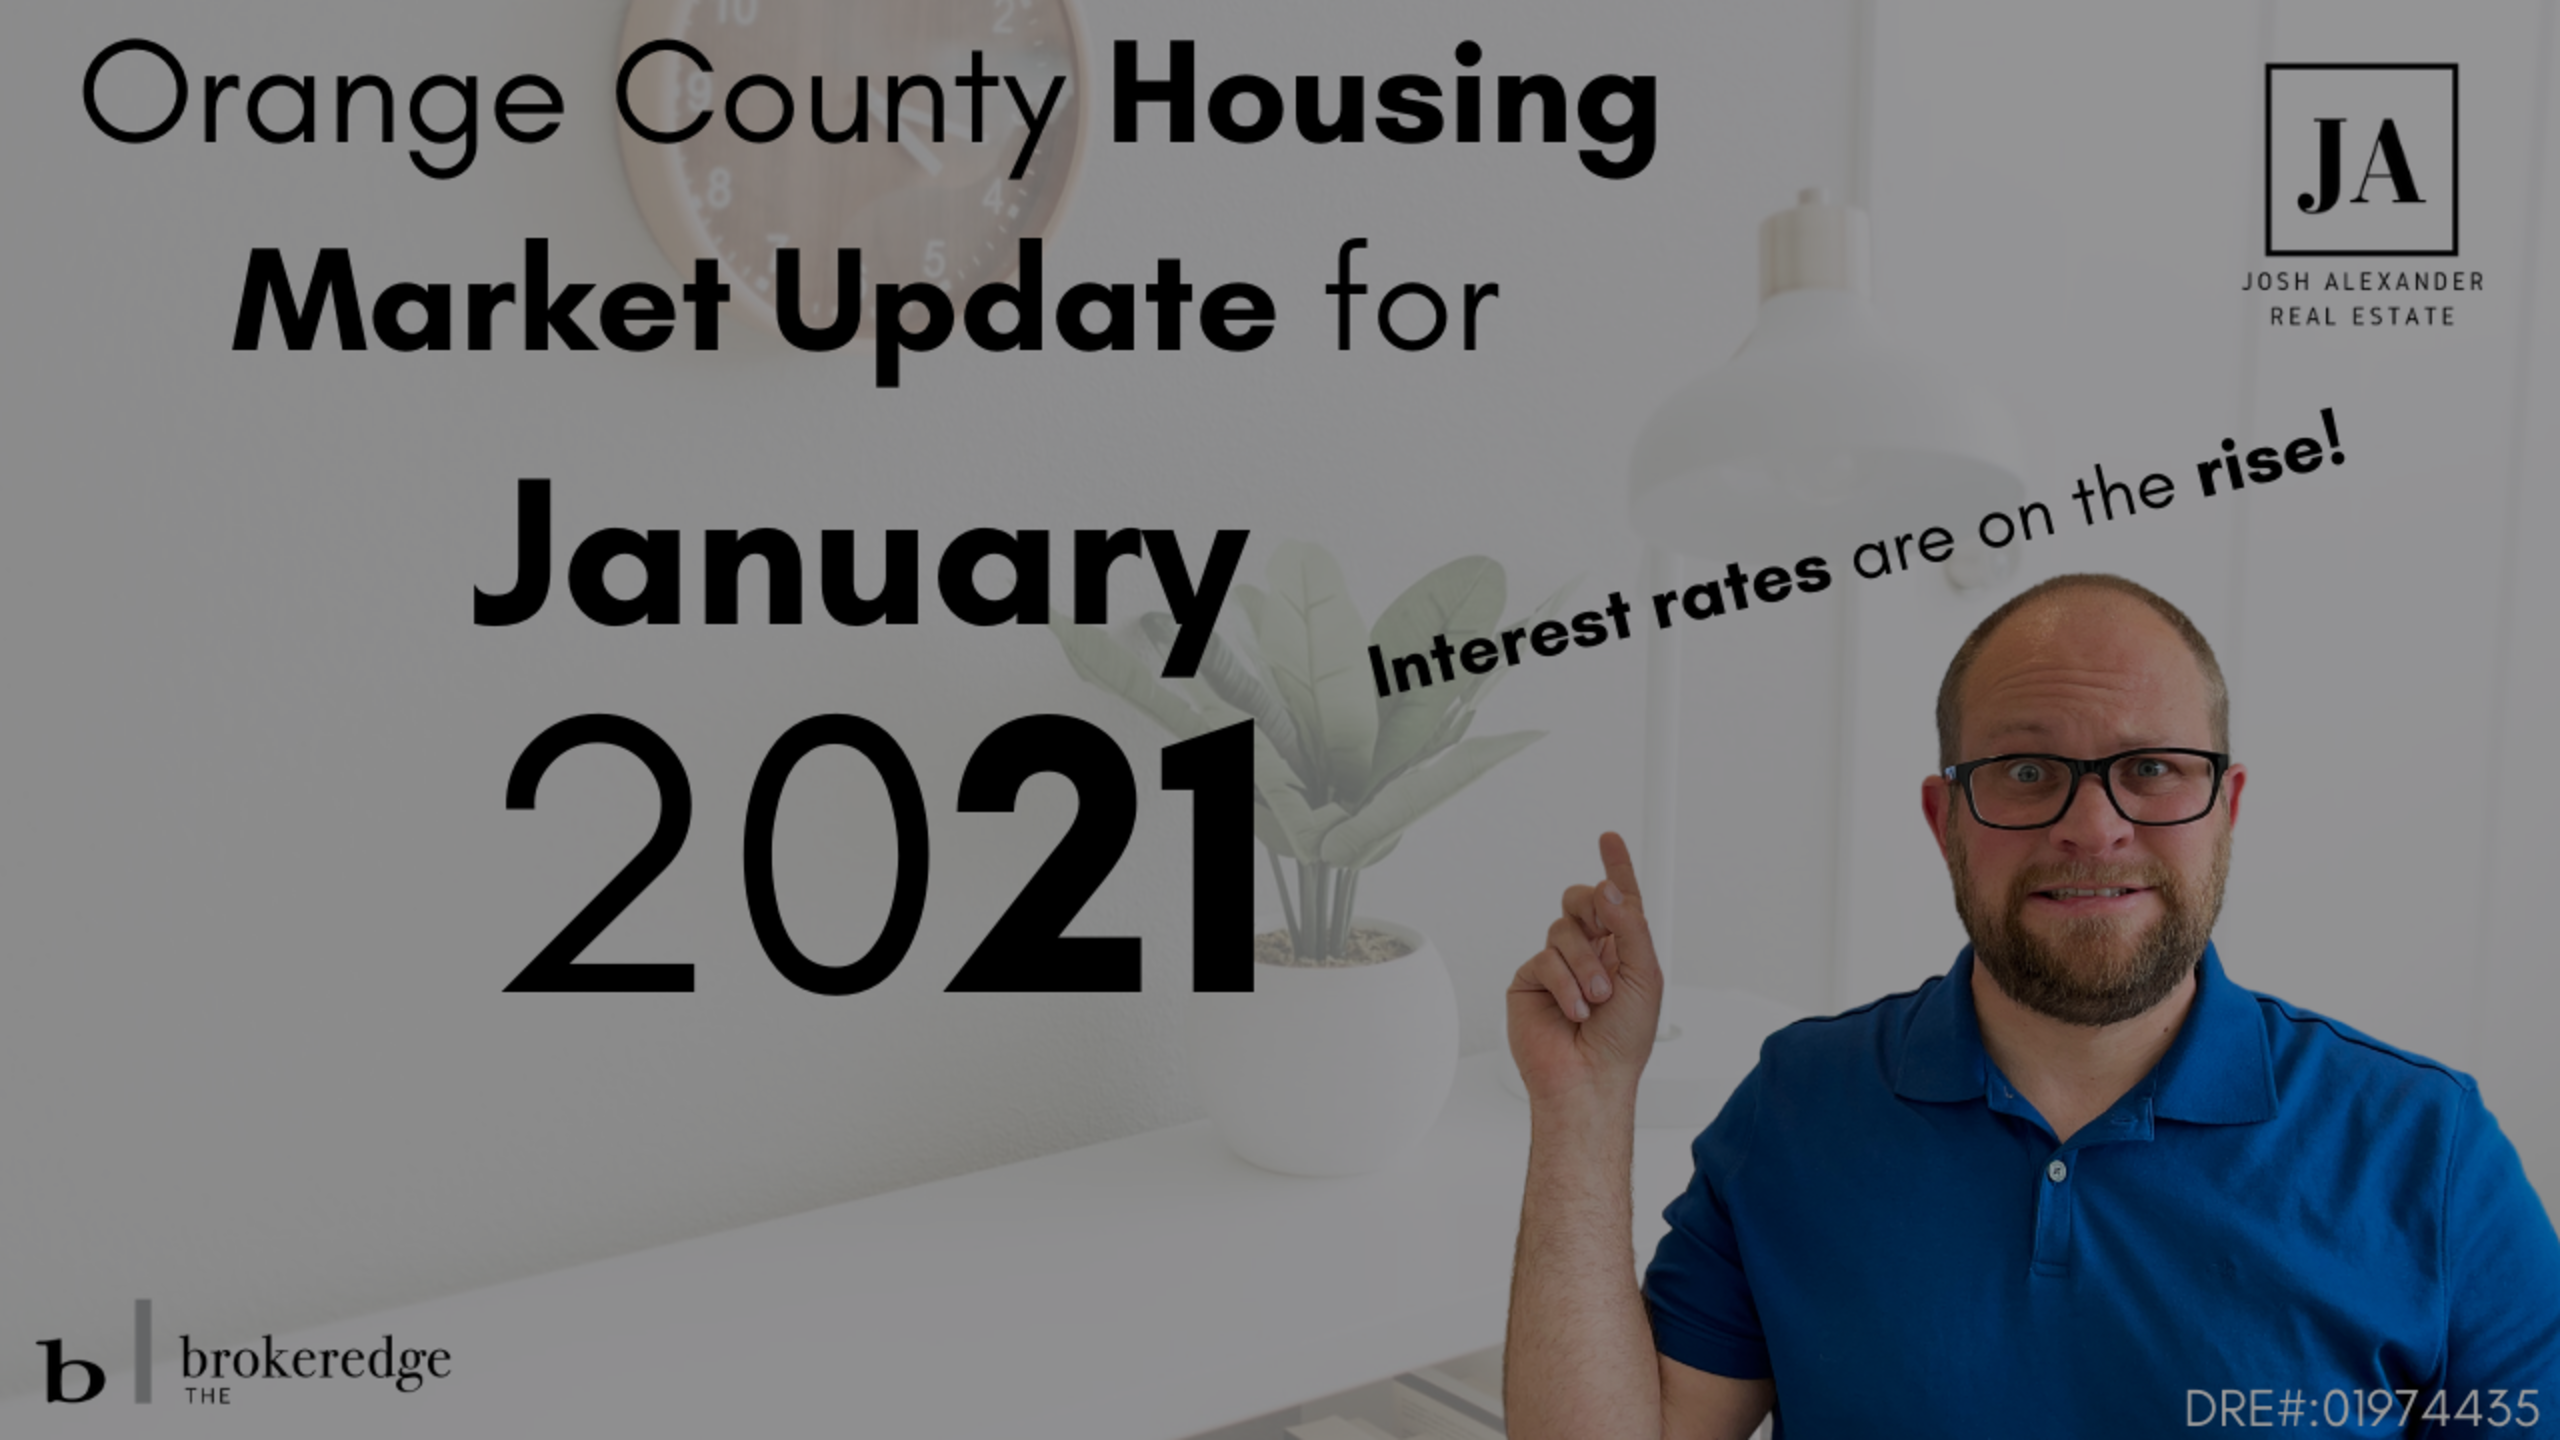 January 2021 OC Housing Market Update – Interest Rates on the Rise?